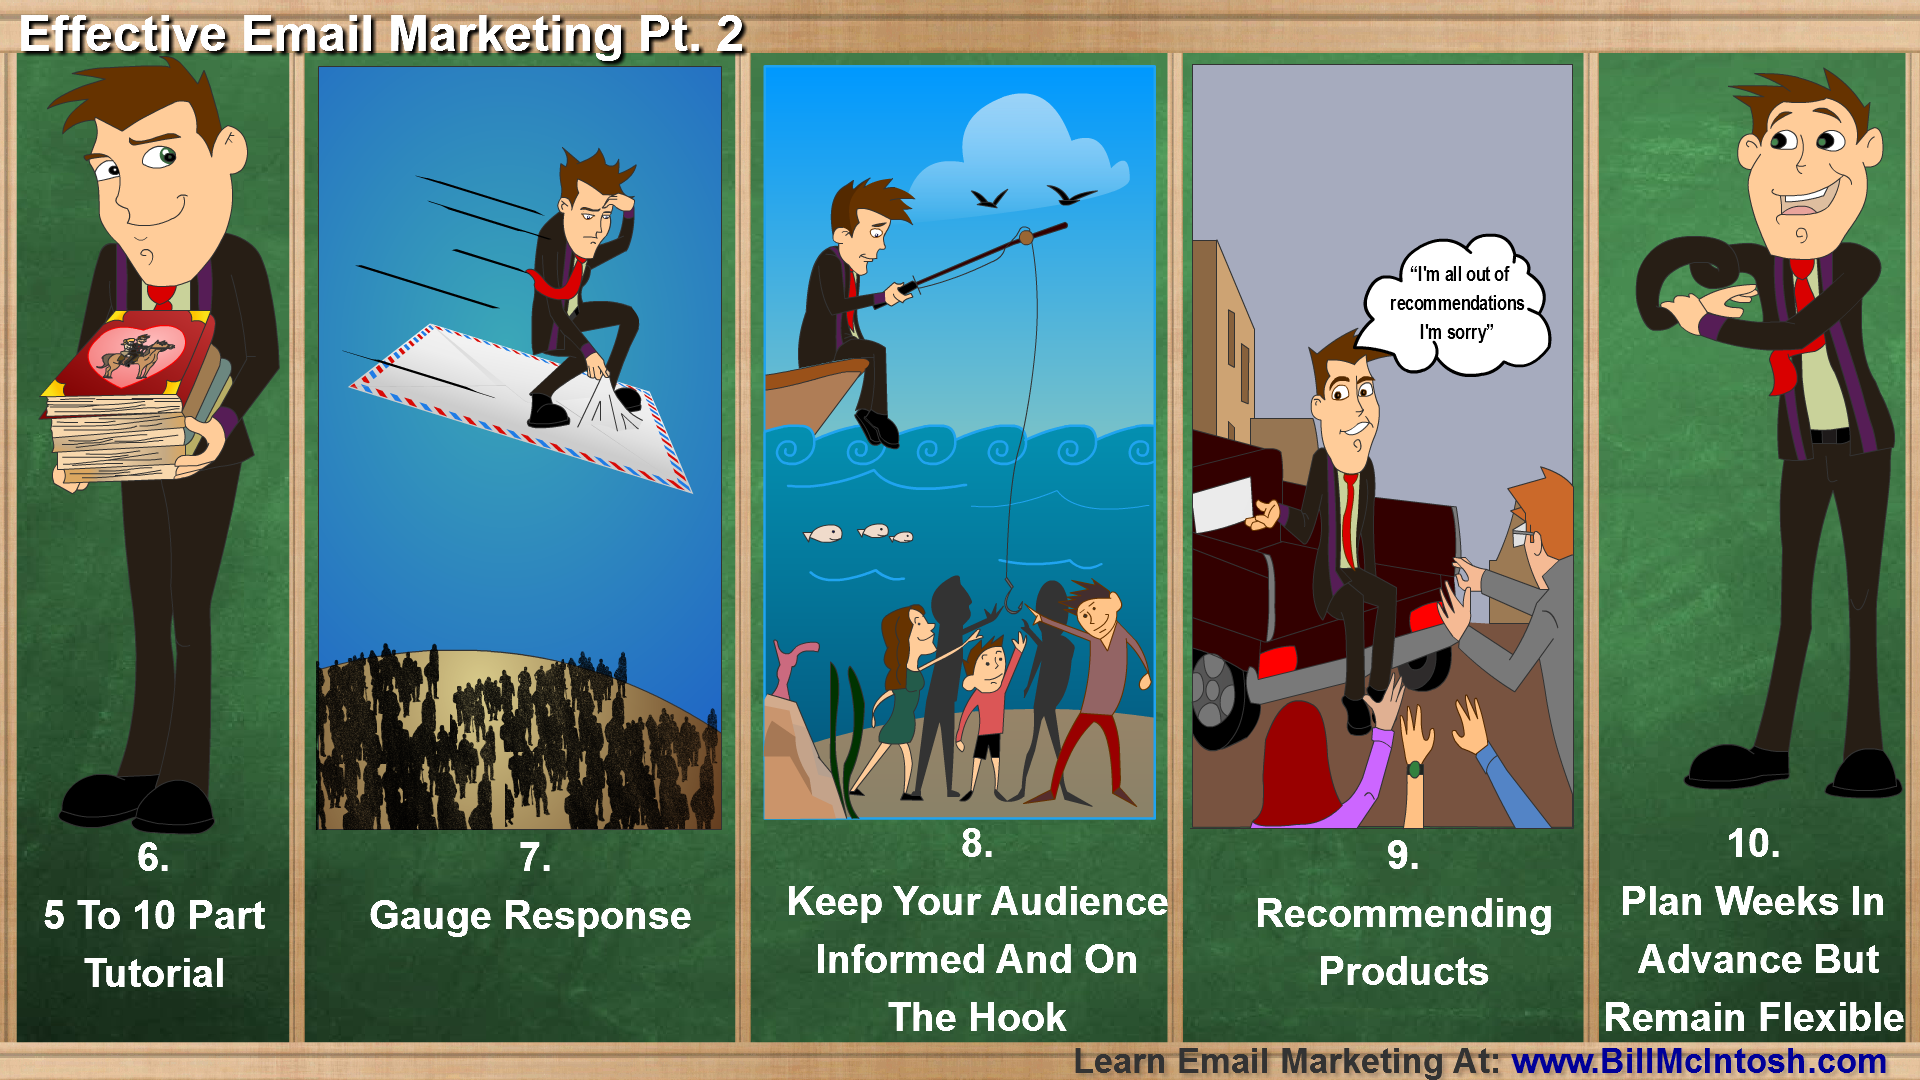 Effective E-mail Marketing Image Part 2